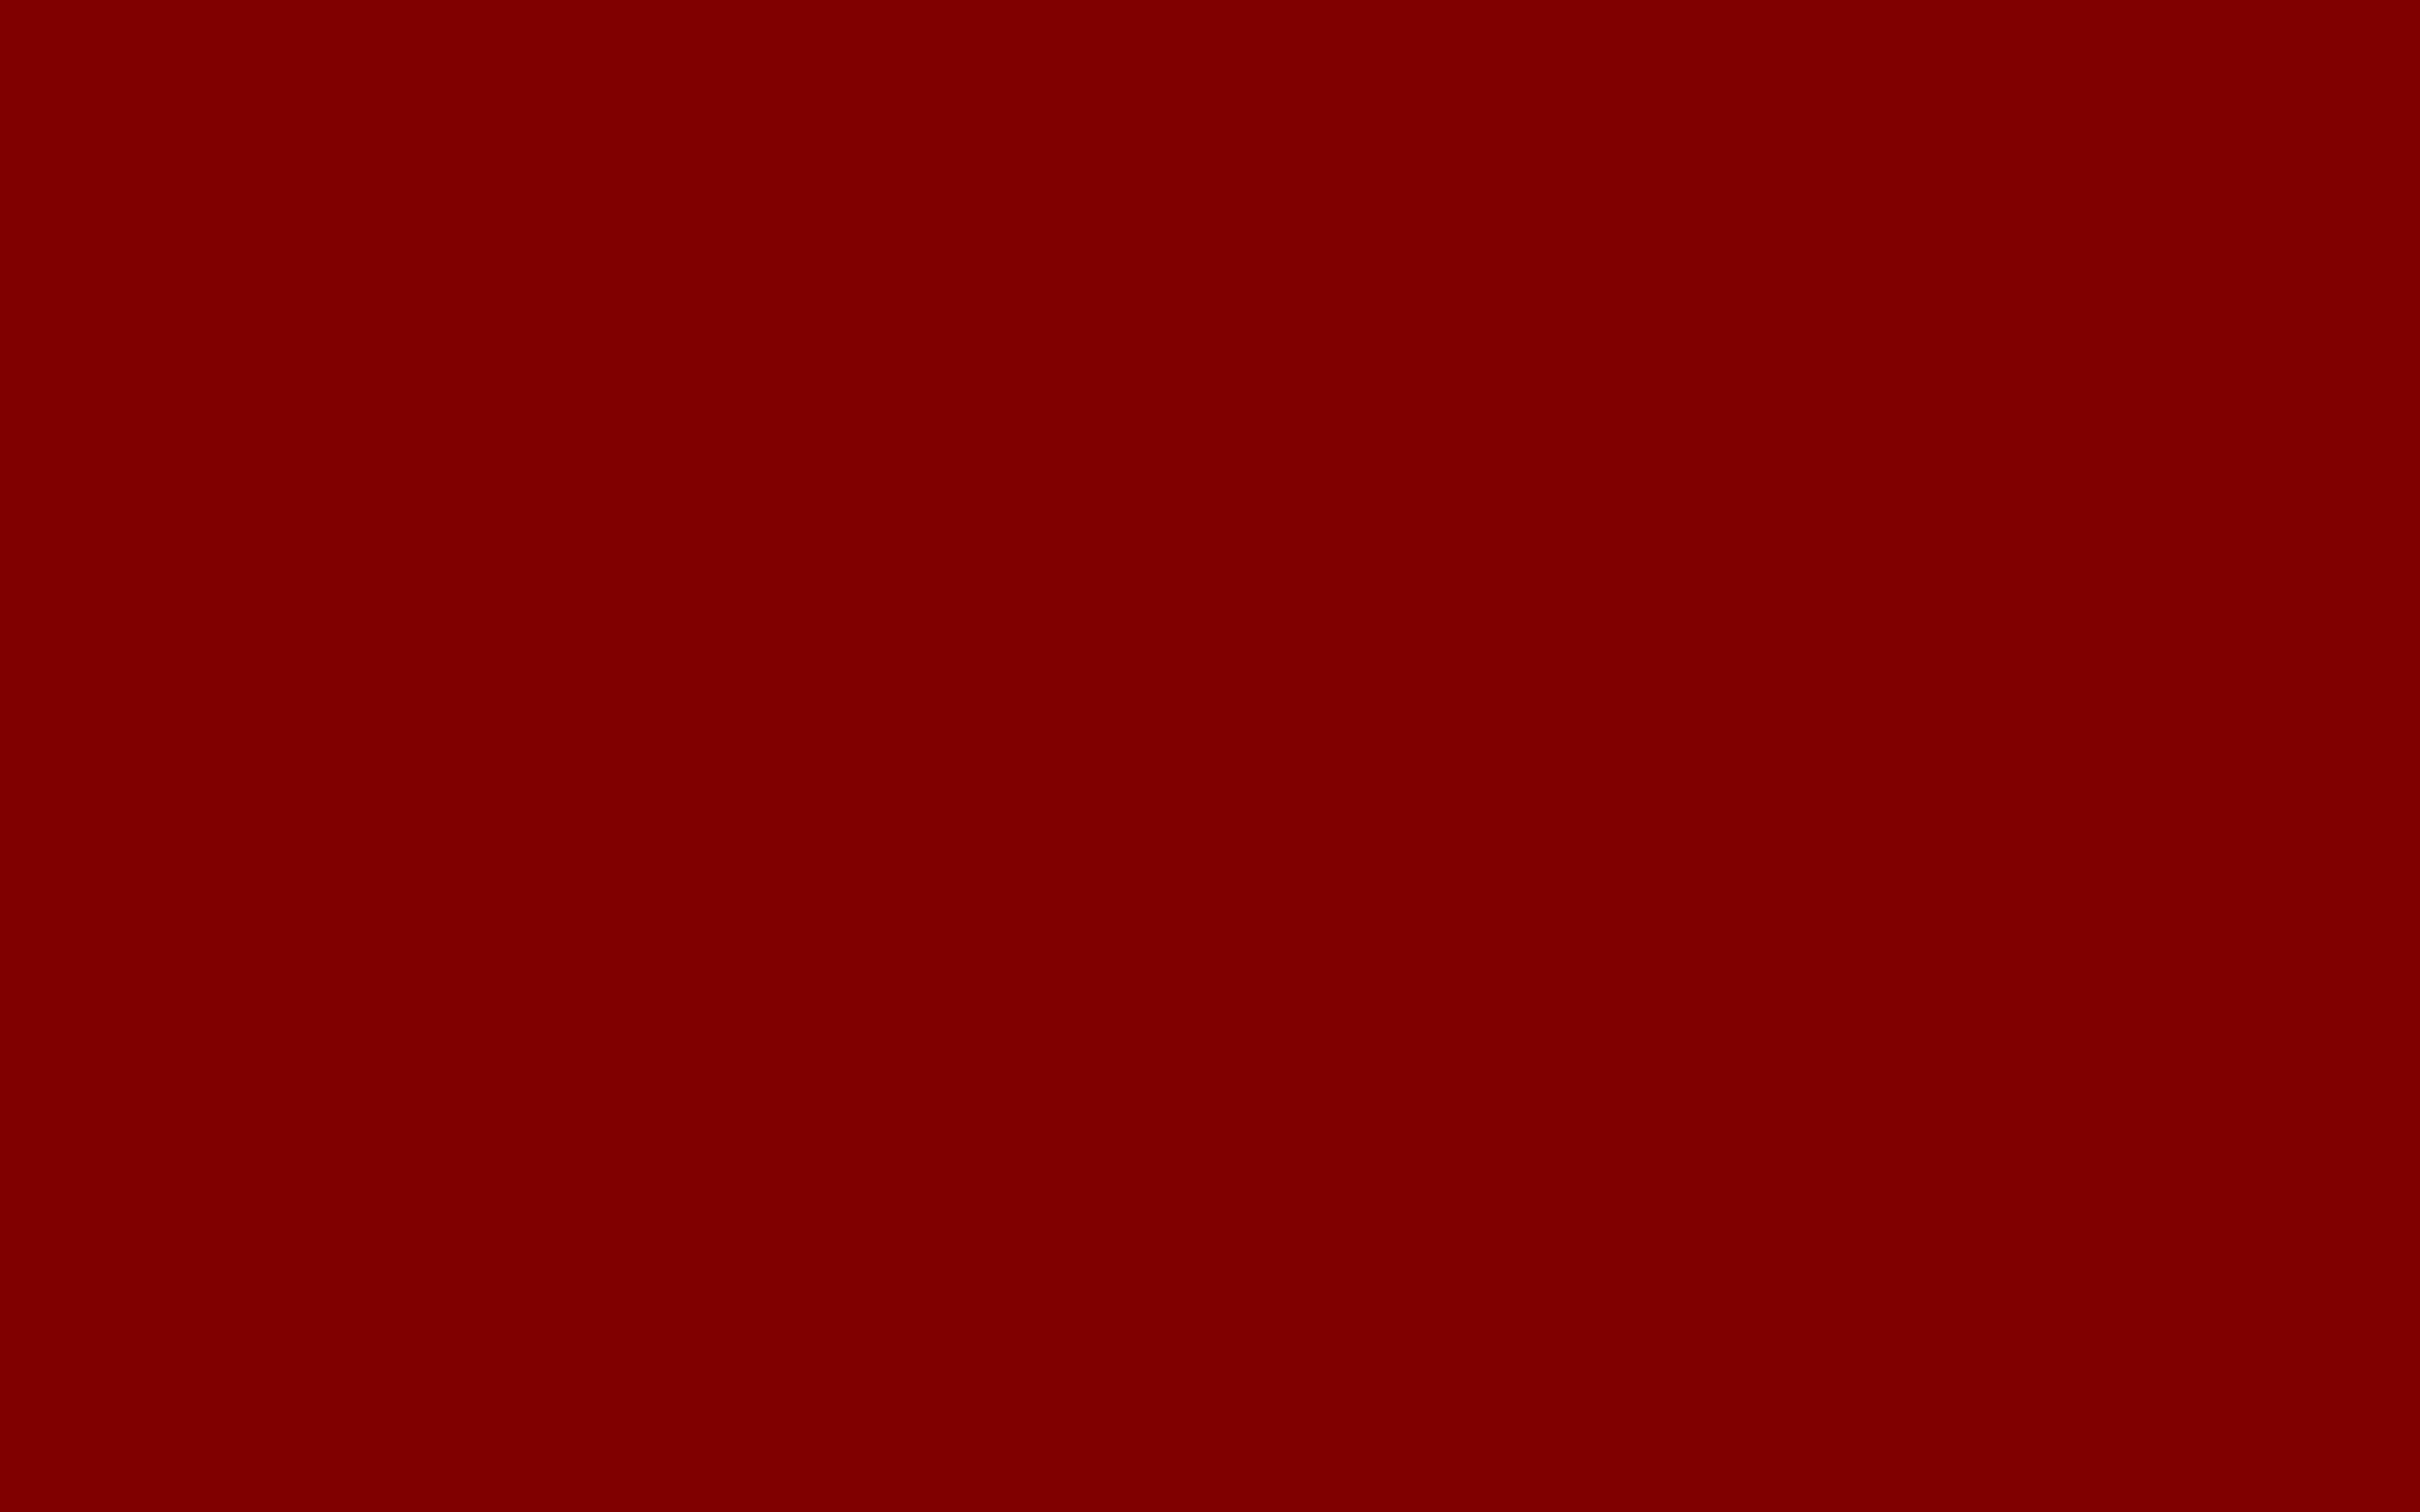 2880x1800 Maroon Web Solid Color Background